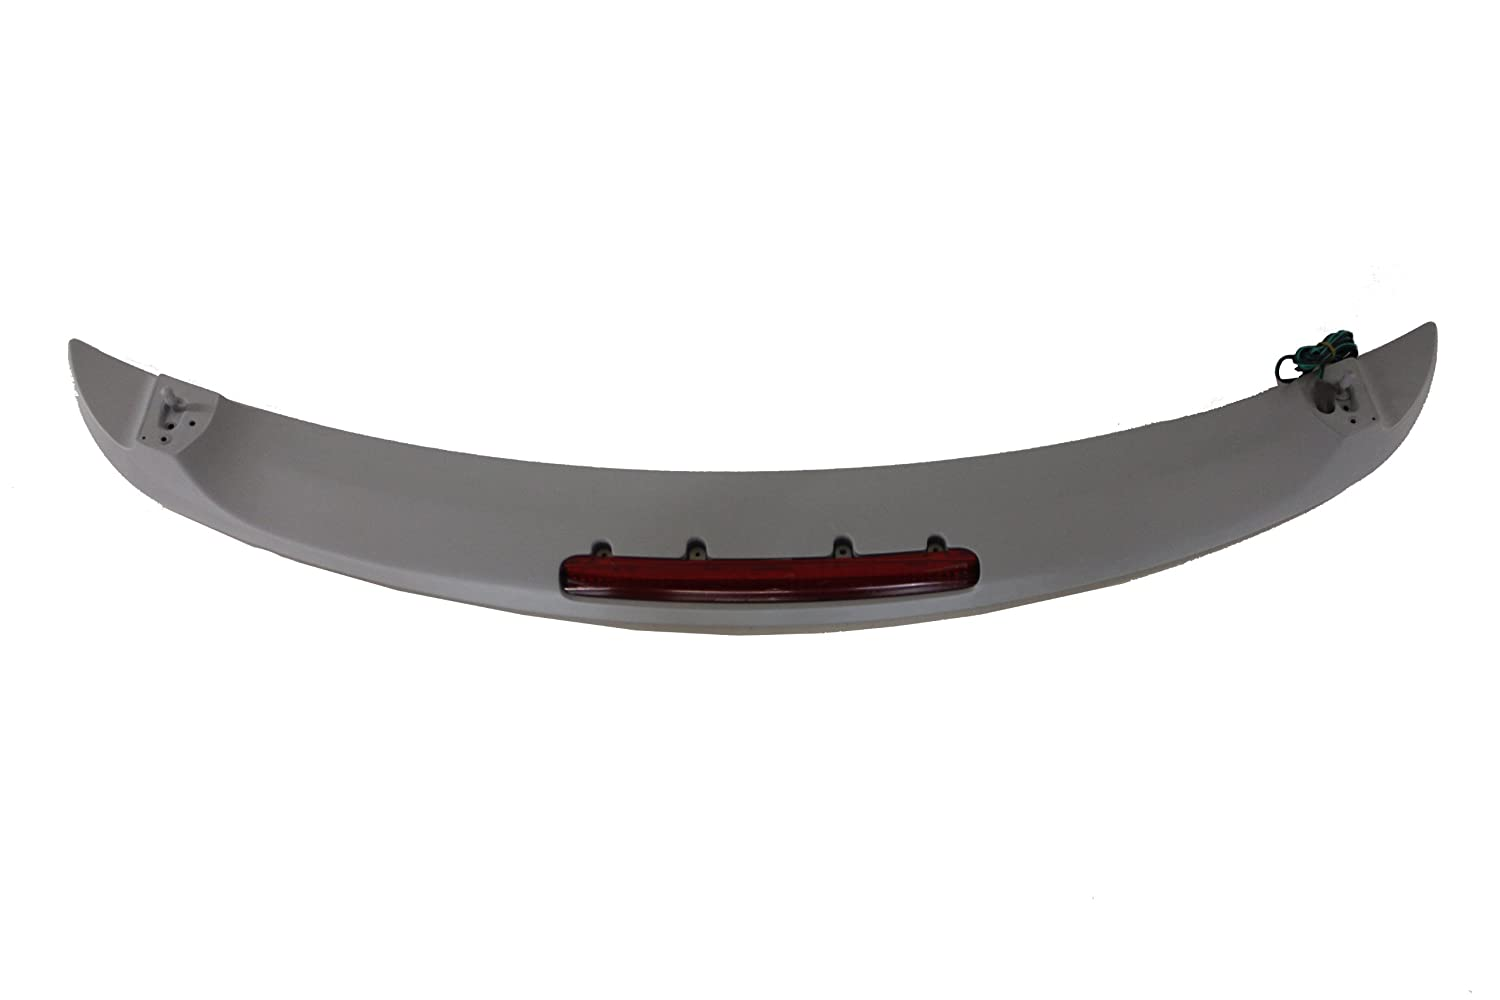 Kia Genuine Accessories P8340-1G200 Rear Spoiler Rio 4-Door Sedan